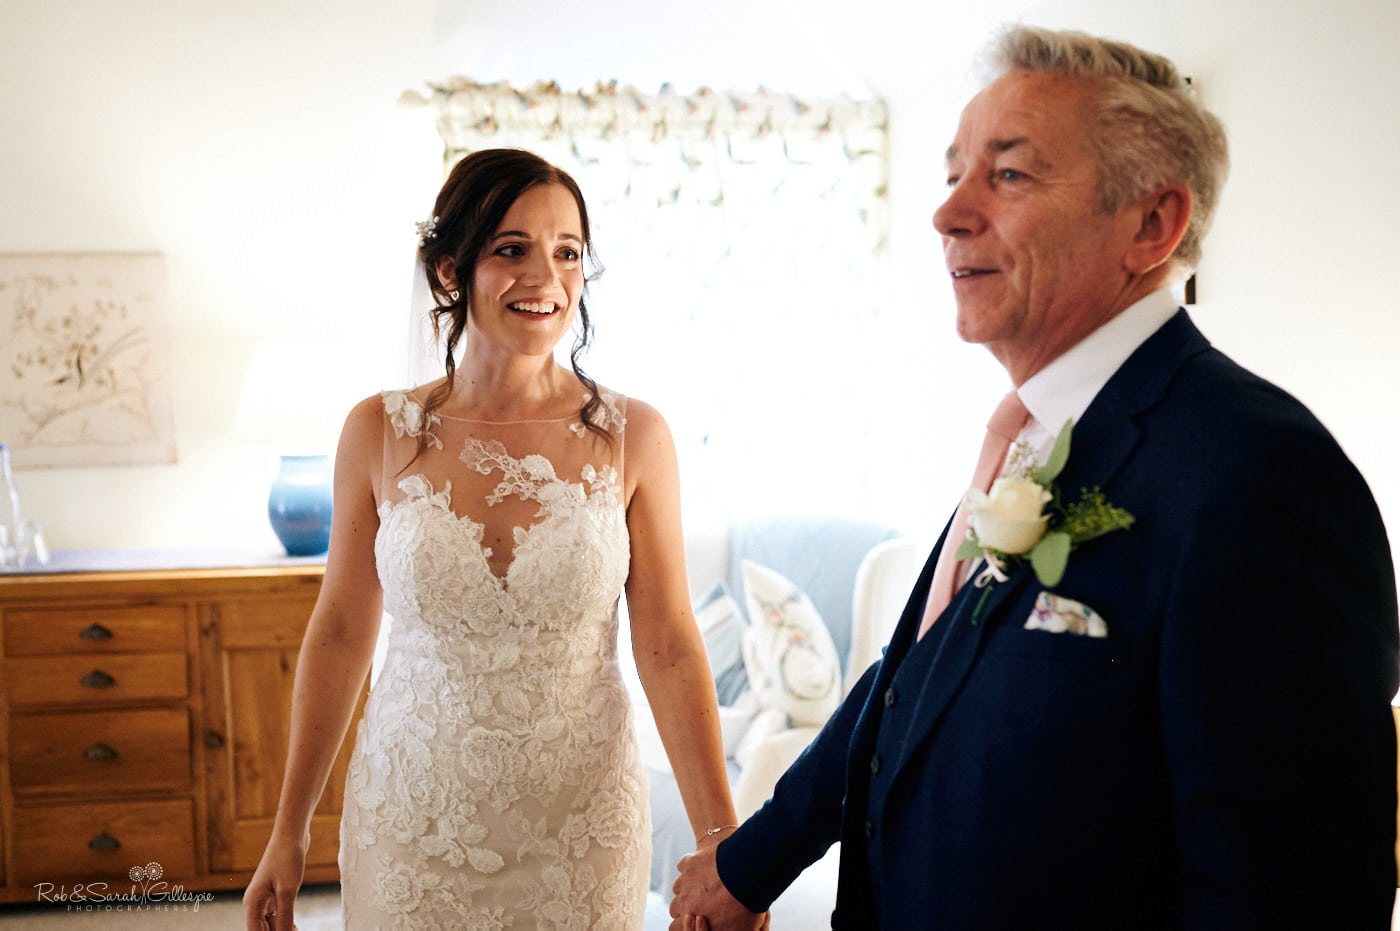 Bride and father share a moment before wedding